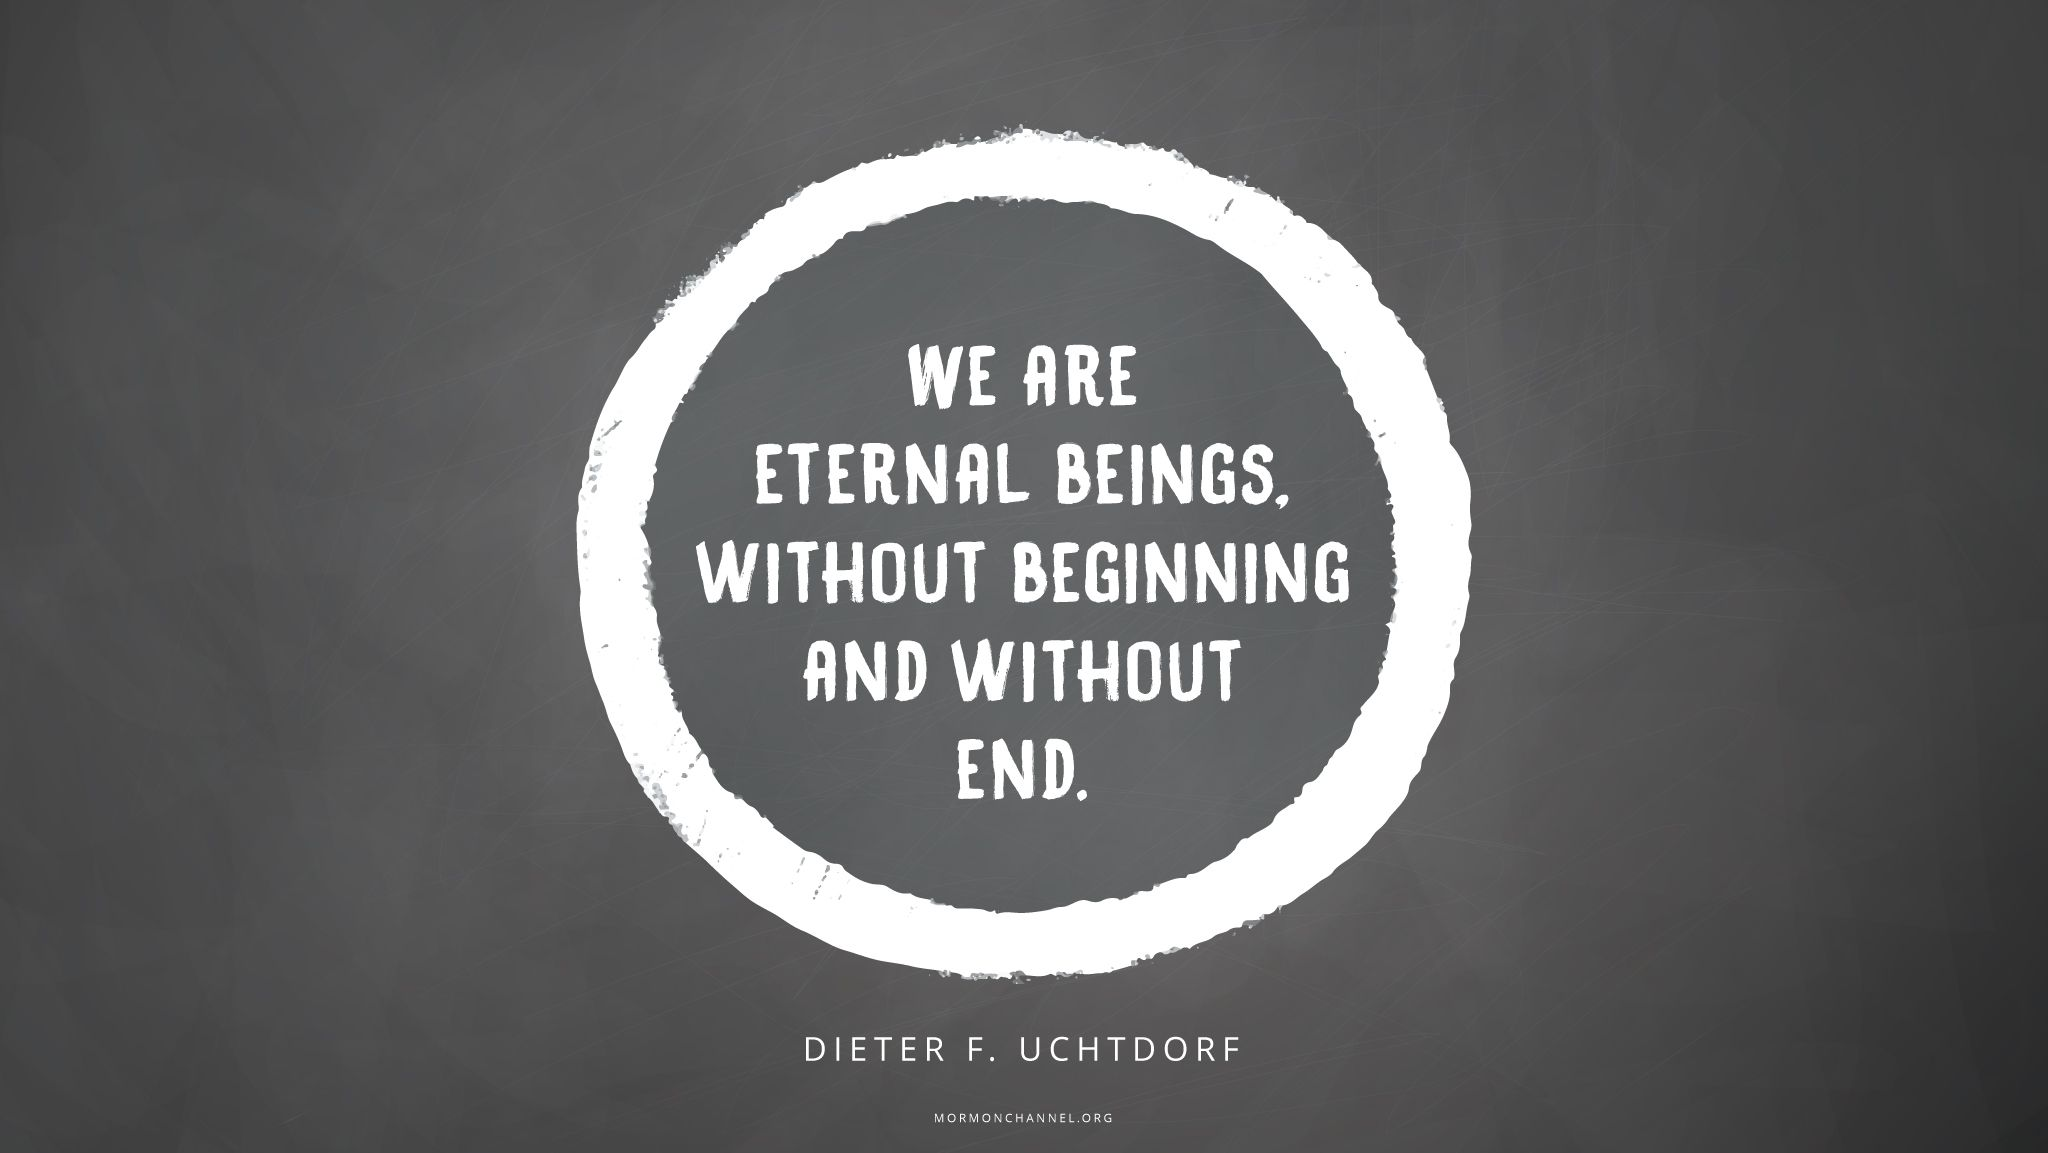 """""""We are eternal beings, without beginning and without end.""""—President Dieter F. Uchtdorf, """"O How Great the Plan of Our God!"""""""